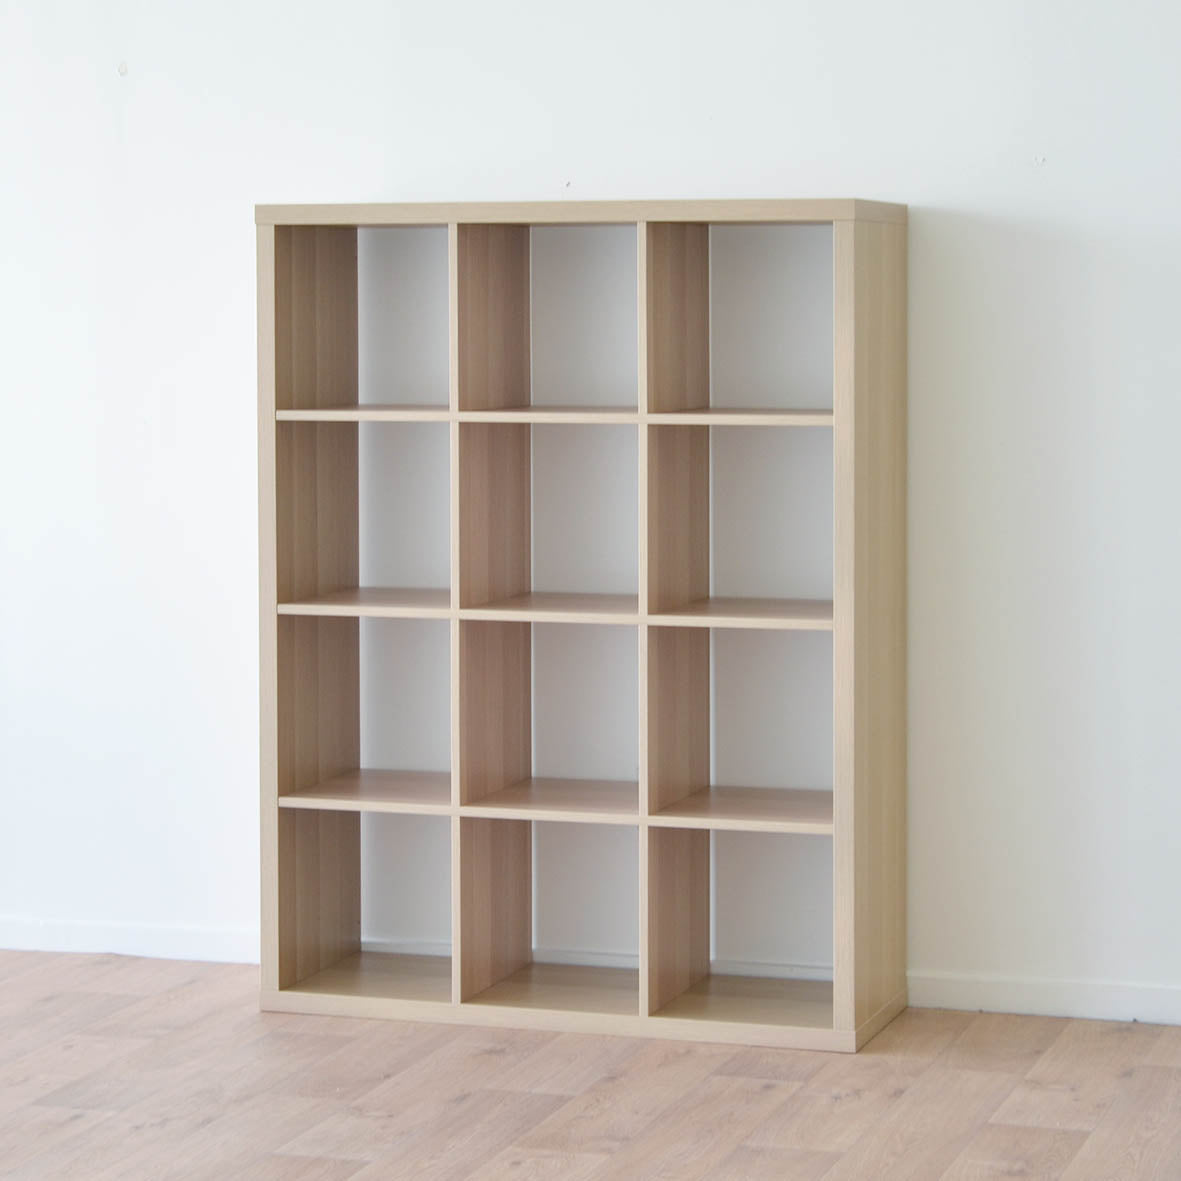 IKEA Kallax 3x4 Shelving Unit, 112x147cm, White Stained Oak